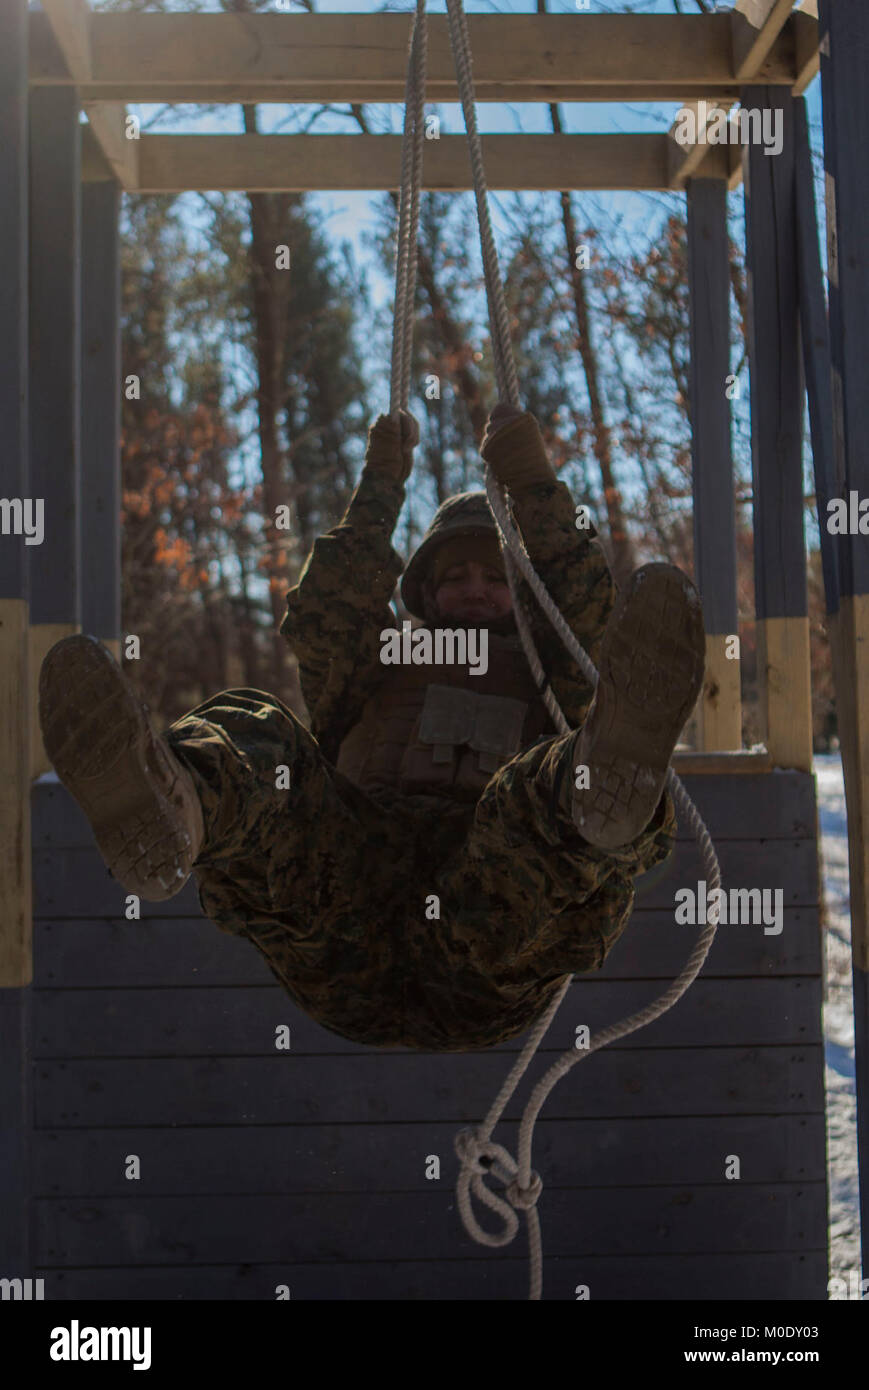 U.S. Marine Lance Cpl. Kameron V. Kraintz, a Data Systems Administrator assigned to Marine Wing Communications Squadron 48, participates in a team building exercise on the Field Leadership Reaction Course during Ullr Shield on Fort McCoy, Wis., Jan. 18, 2018. Ullr Shield is a training exercise designed to improve 2nd Marine Aircraft Wing's capabilities in extreme cold weather environments. (U.S. Marine Corps Stock Photo